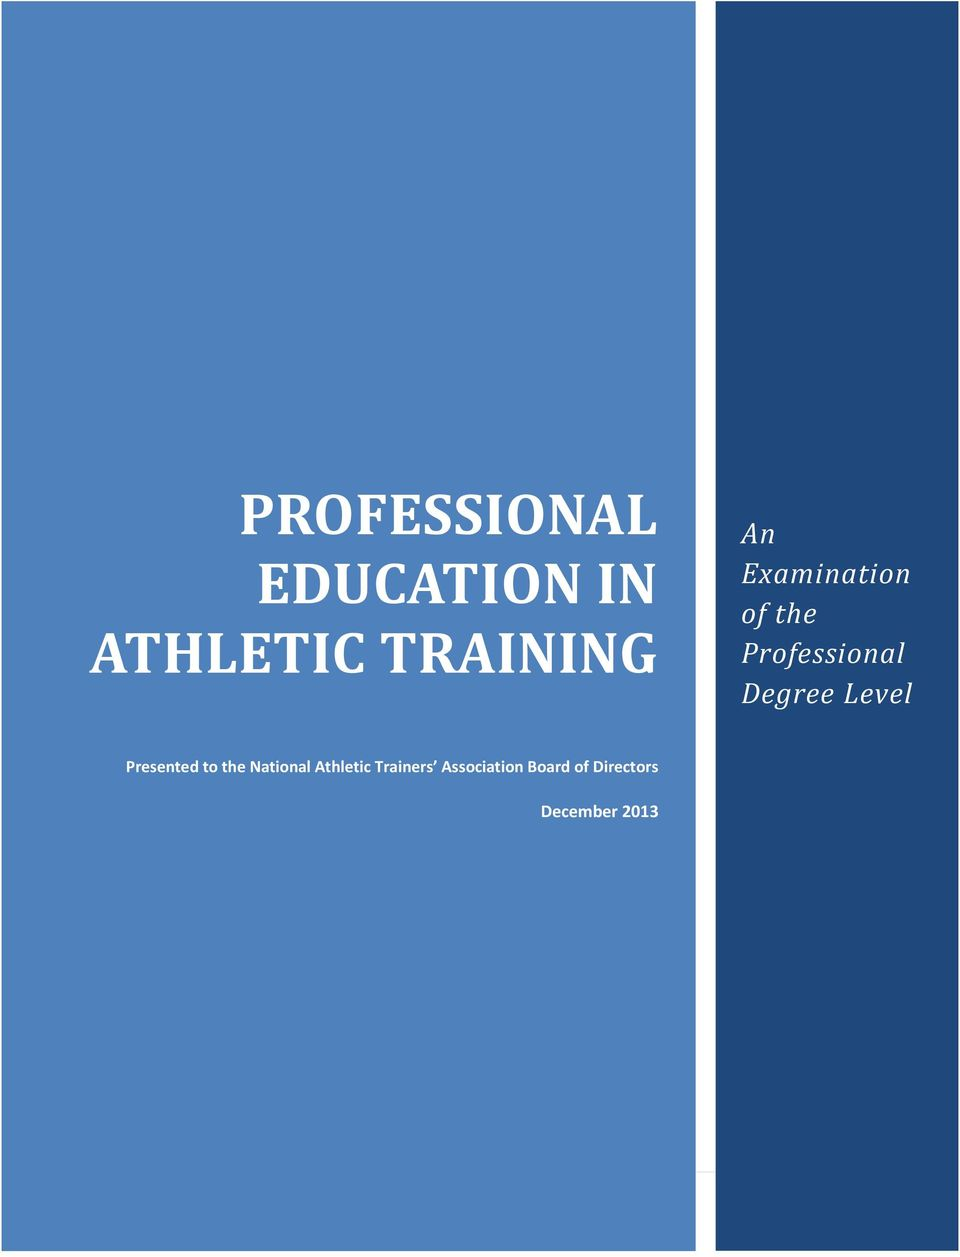 Presented to the National Athletic Trainers